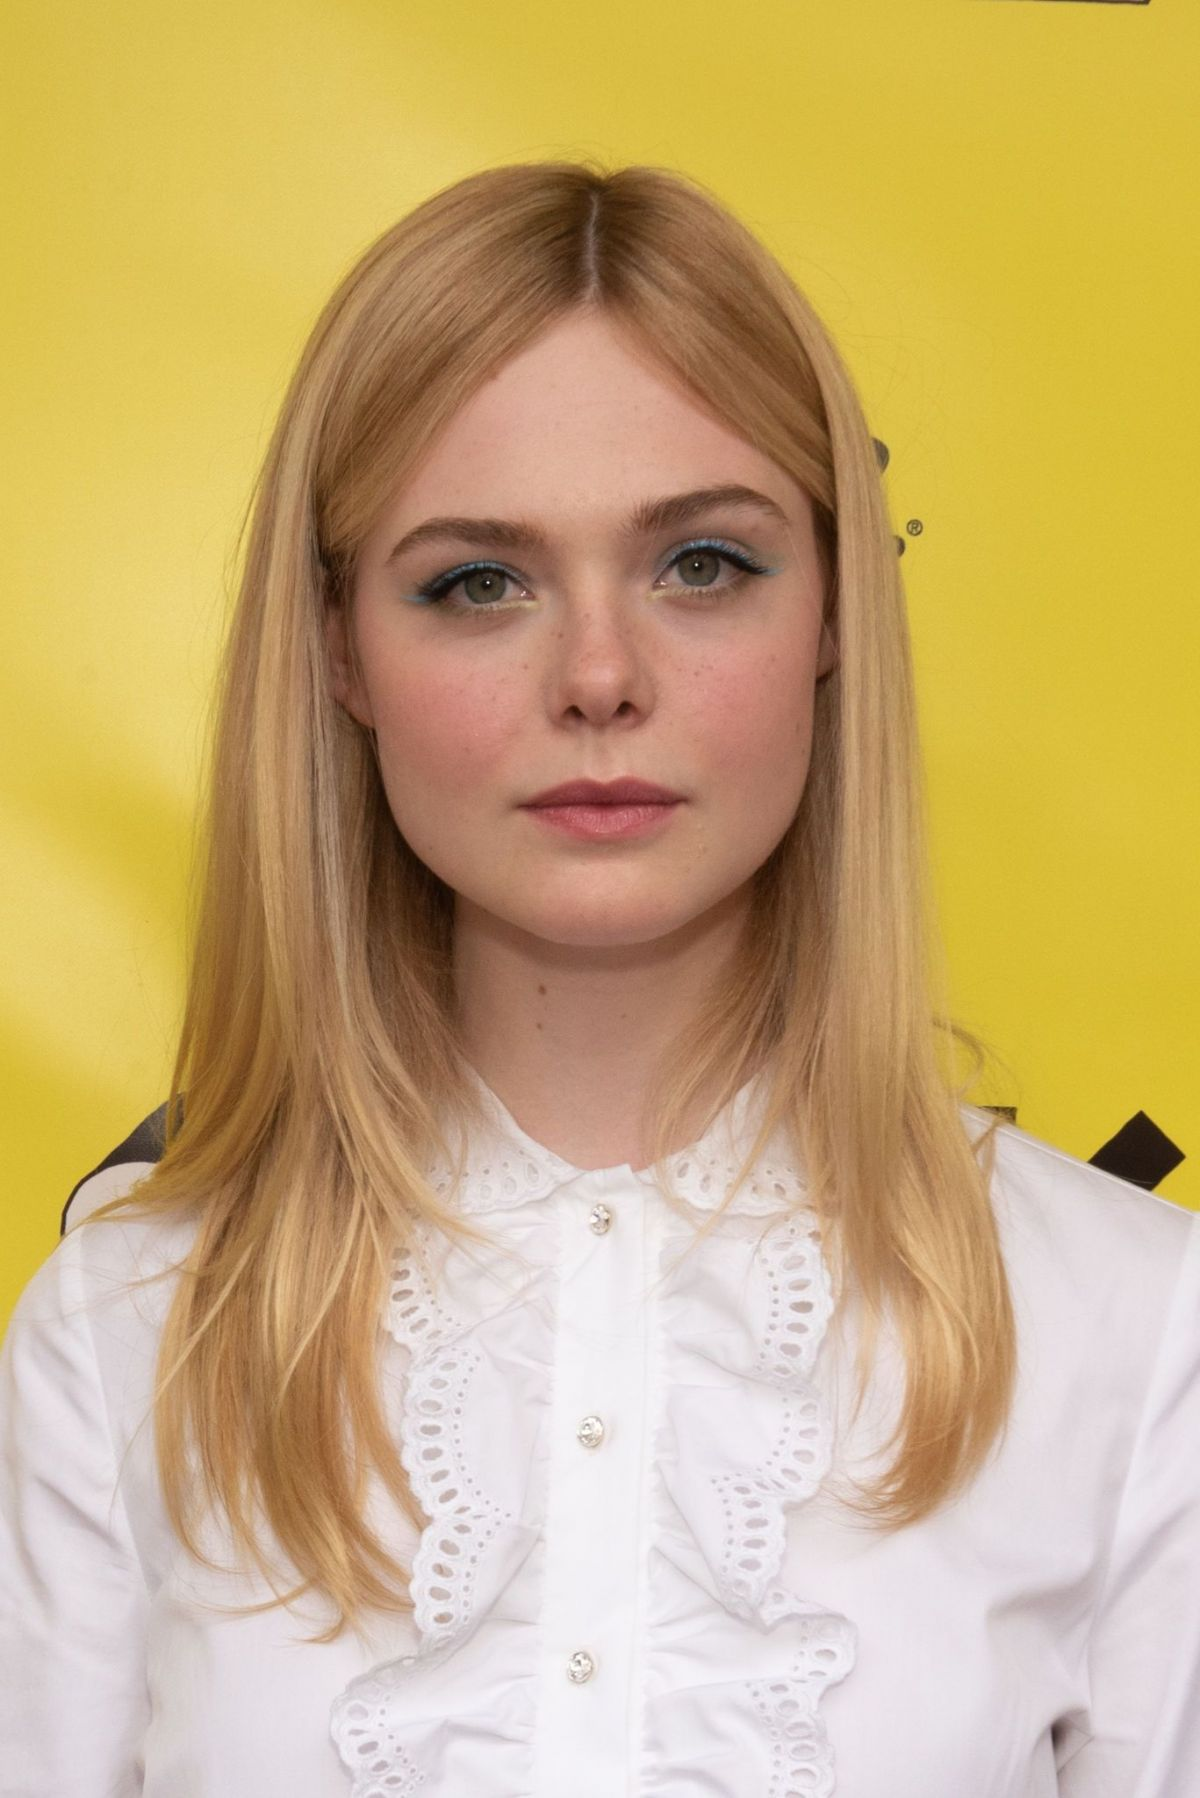 Elle Fanning Covers Fashion Magazine Says She Loves Being: ELLE FANNING At Teen Spirit Premiere At SXSW Festival In